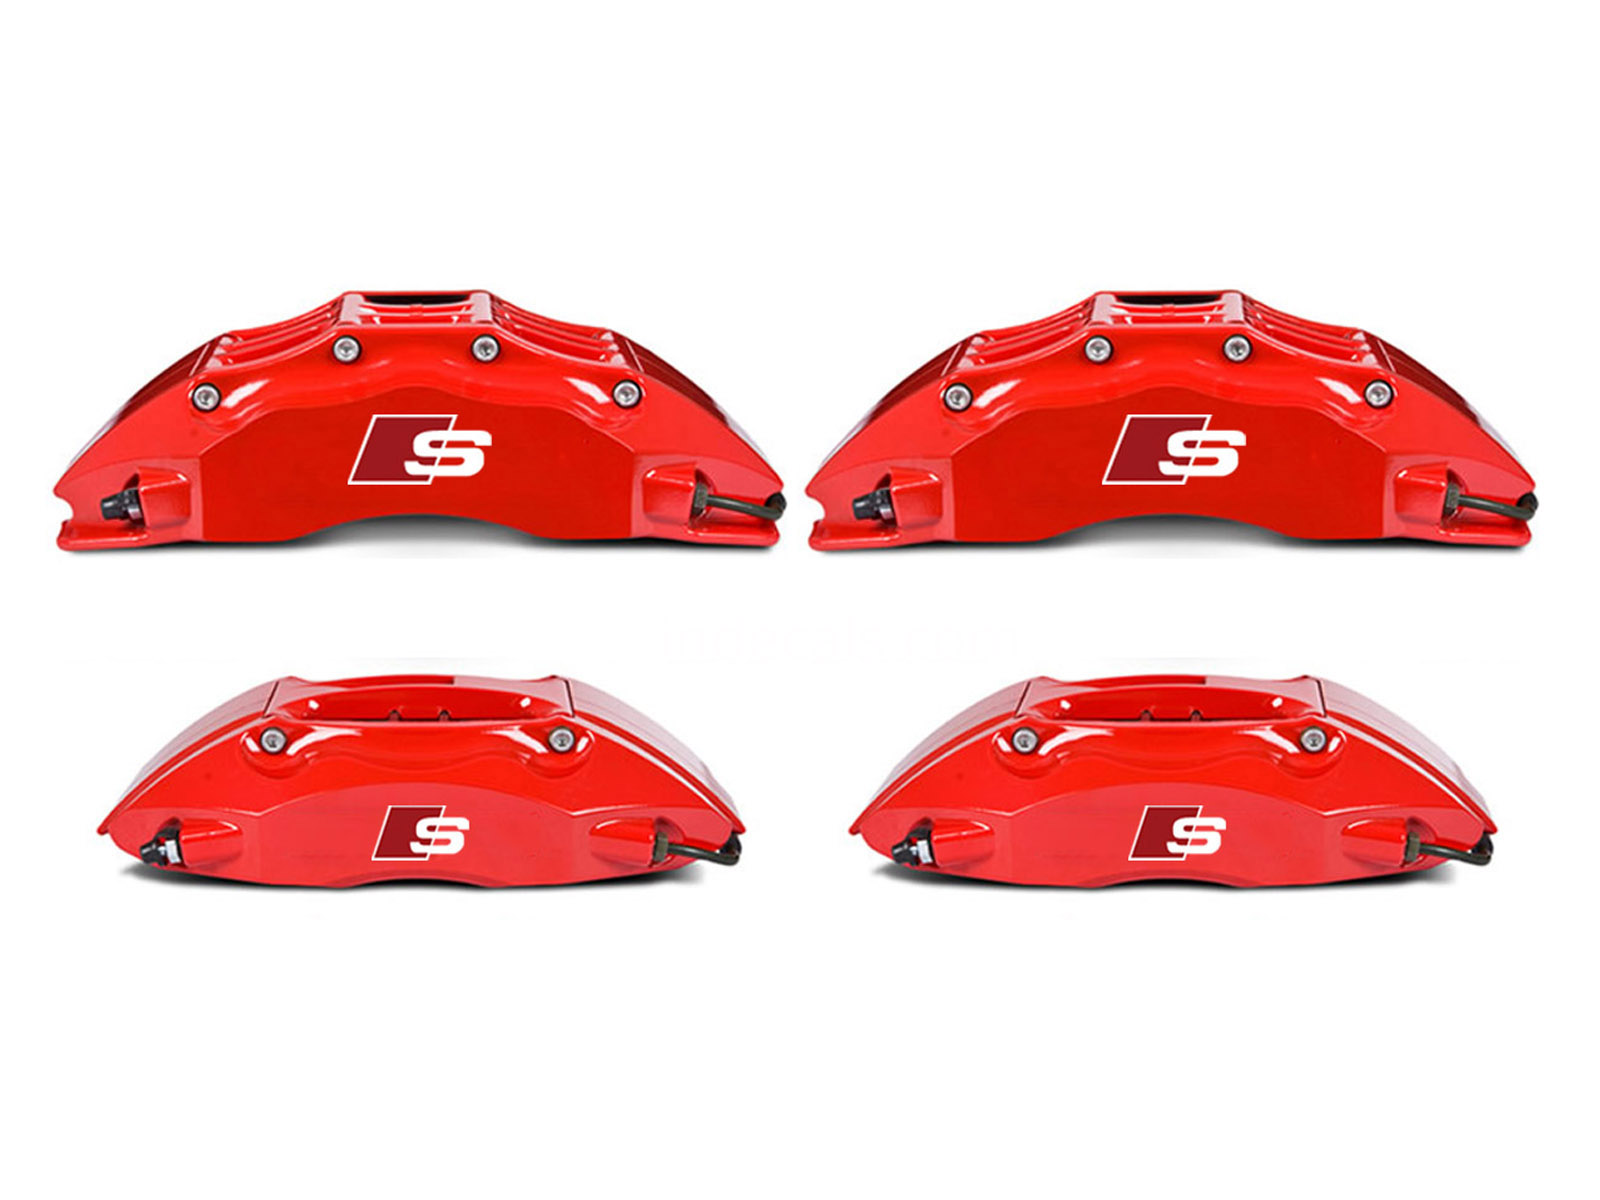 4 x Audi S-Line Stickers for Brake Calipers - White + Red